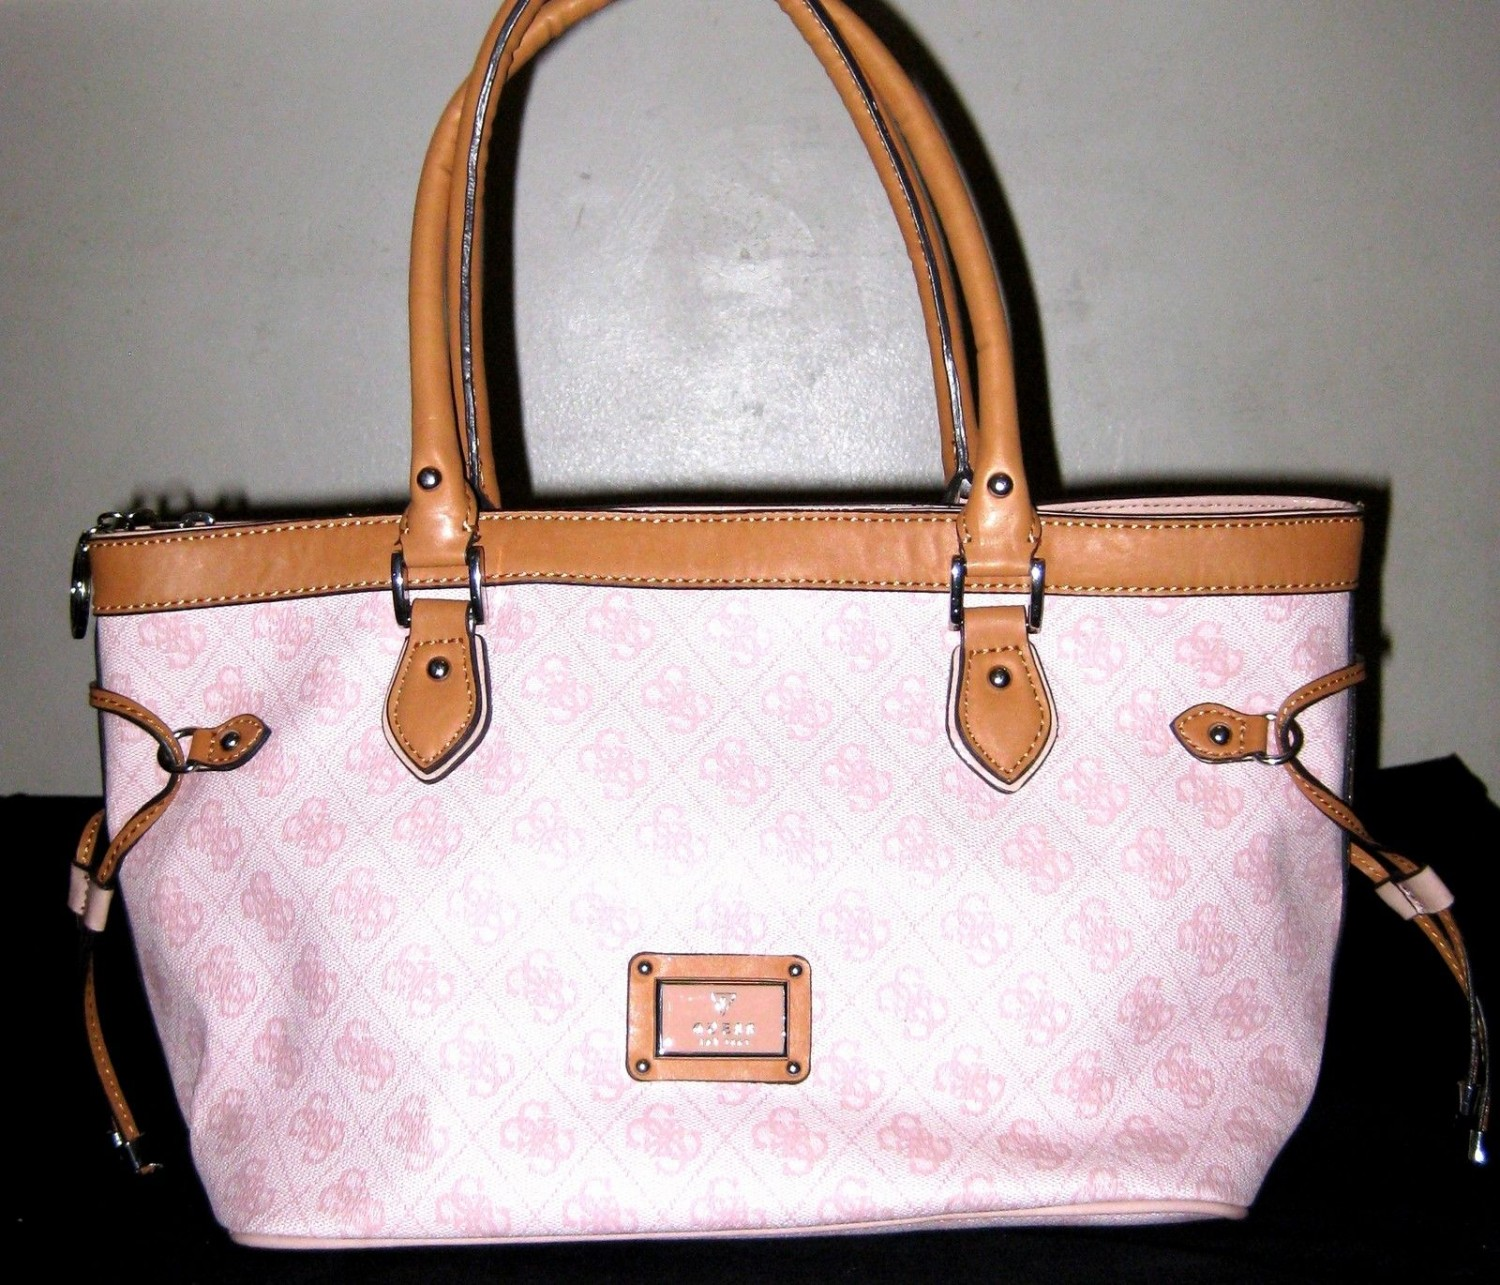 Guess Handbag, Madaket Medium Carryall